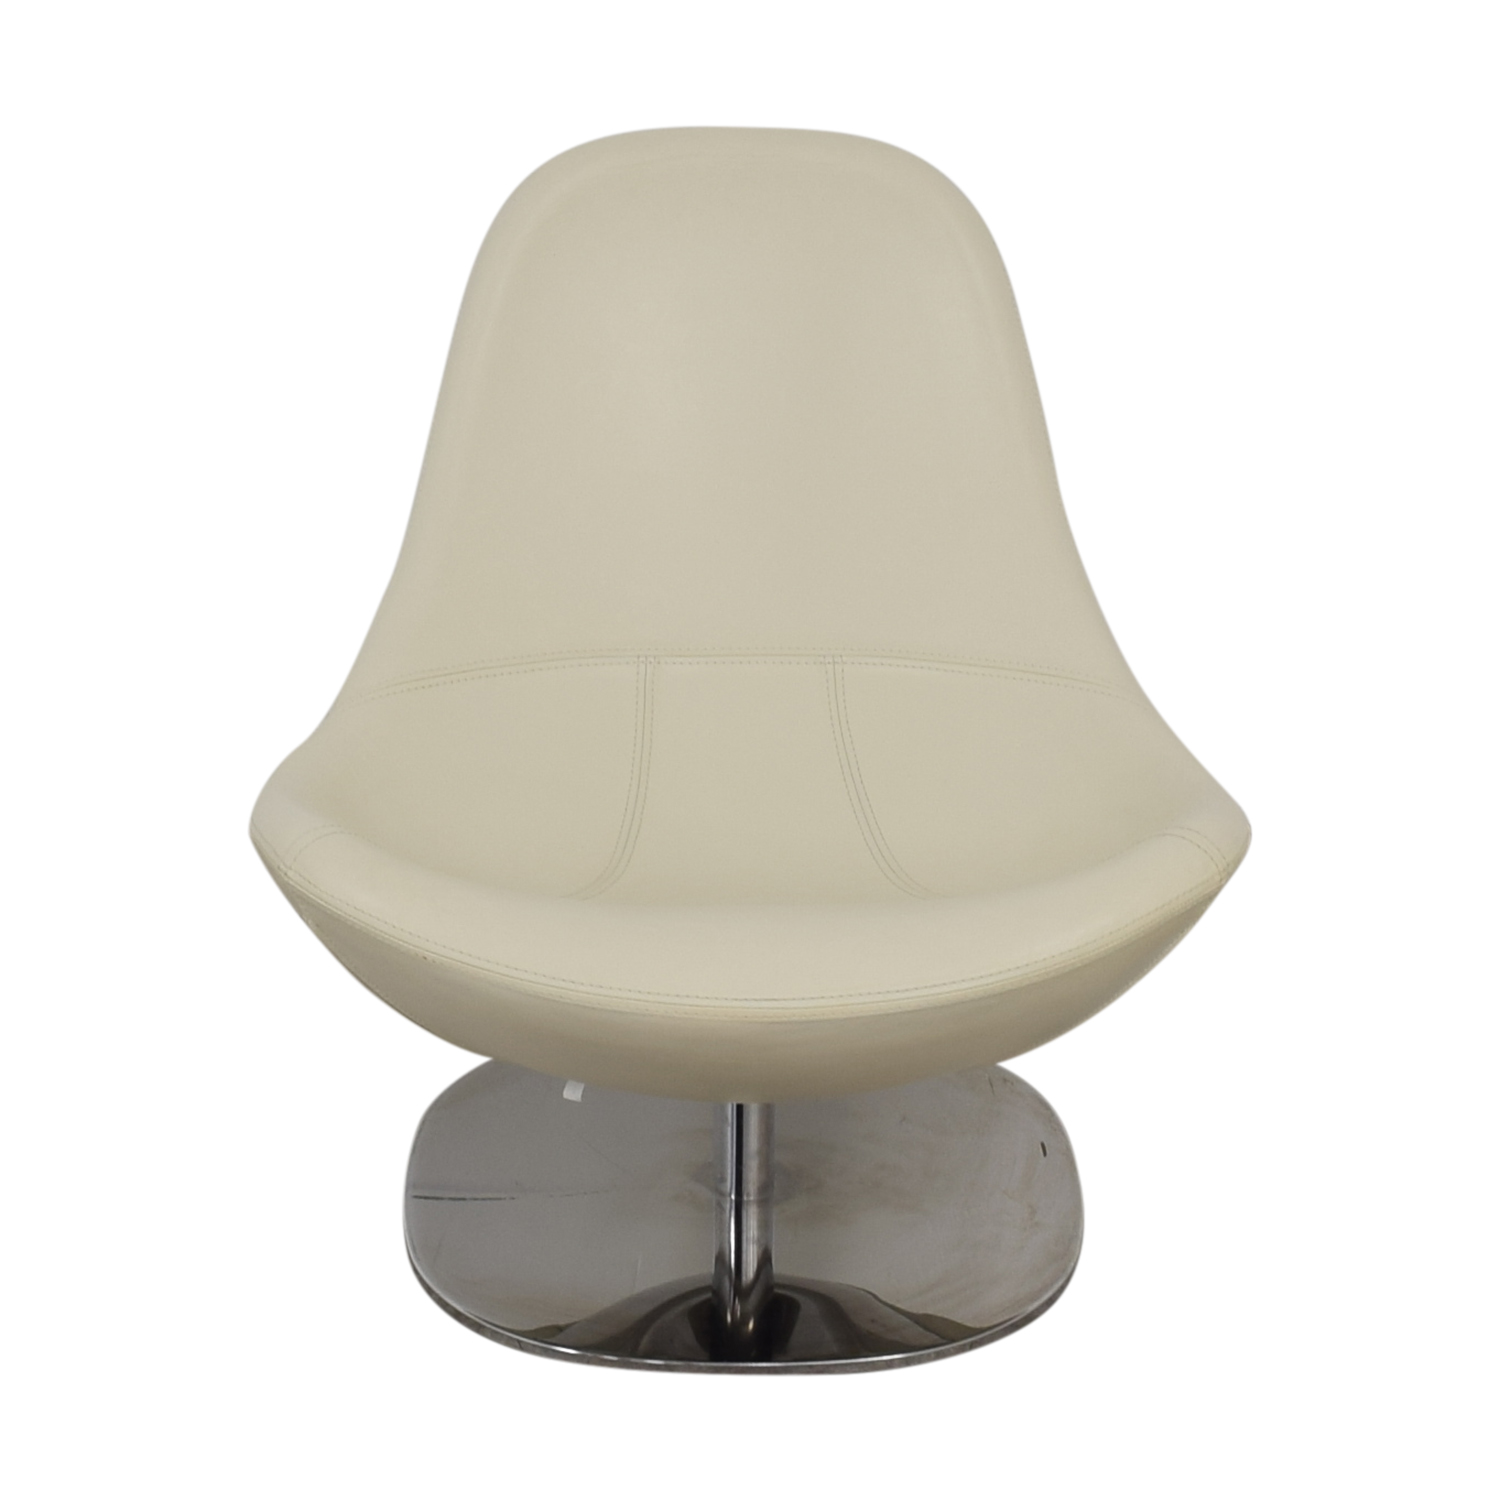 73% OFF - IKEA IKEA Tirup White Leather Swivel Chair / Chairs